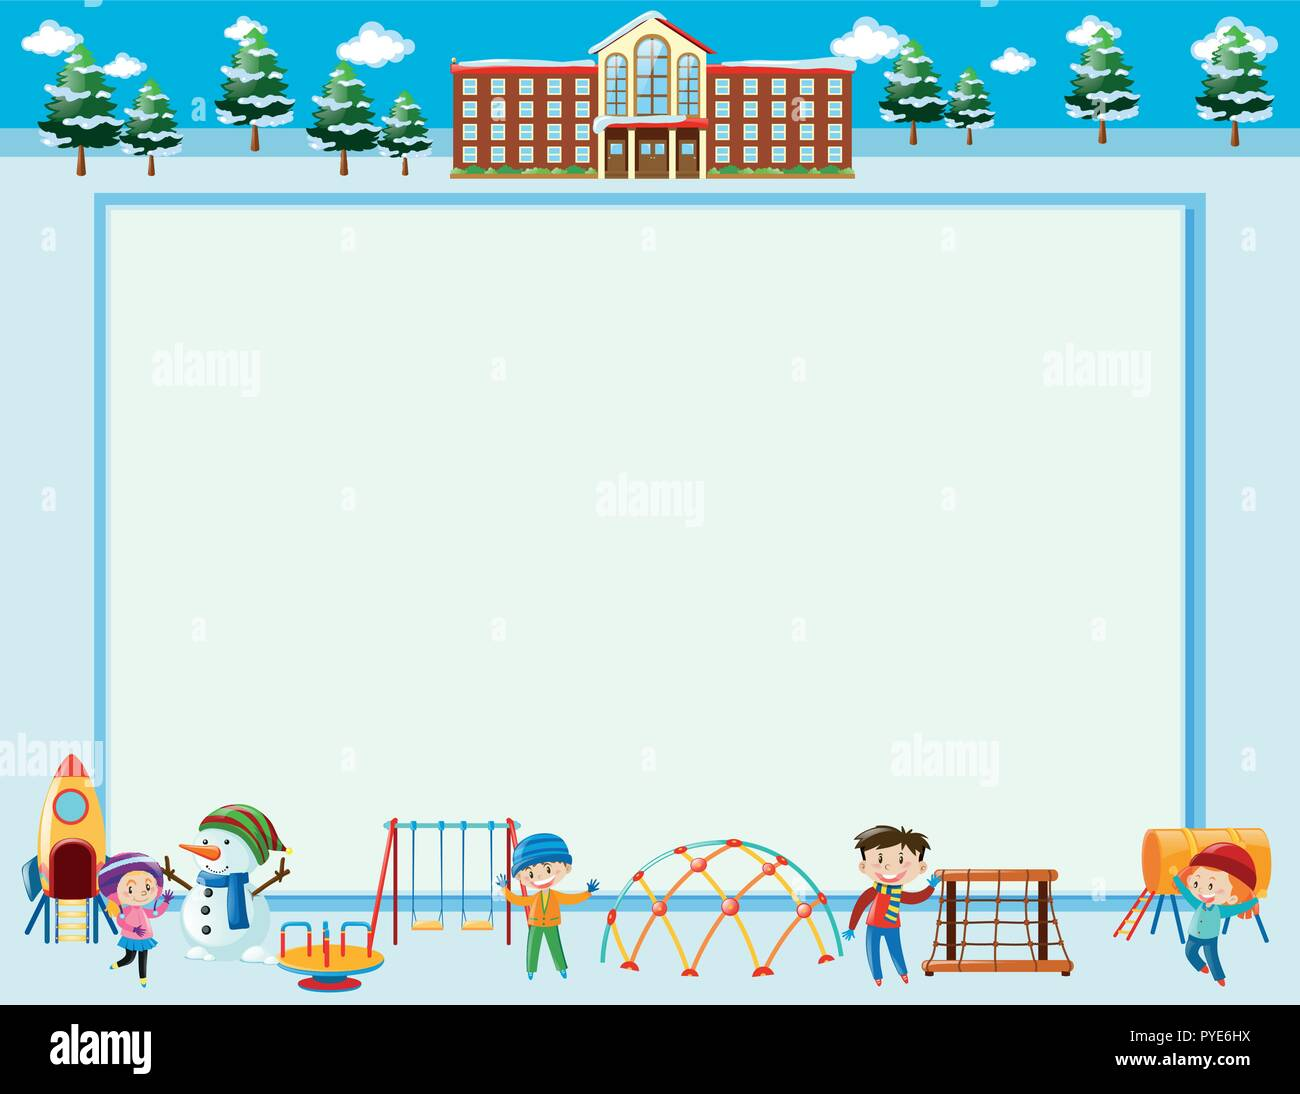 frame template with kids in winter illustration stock vector art